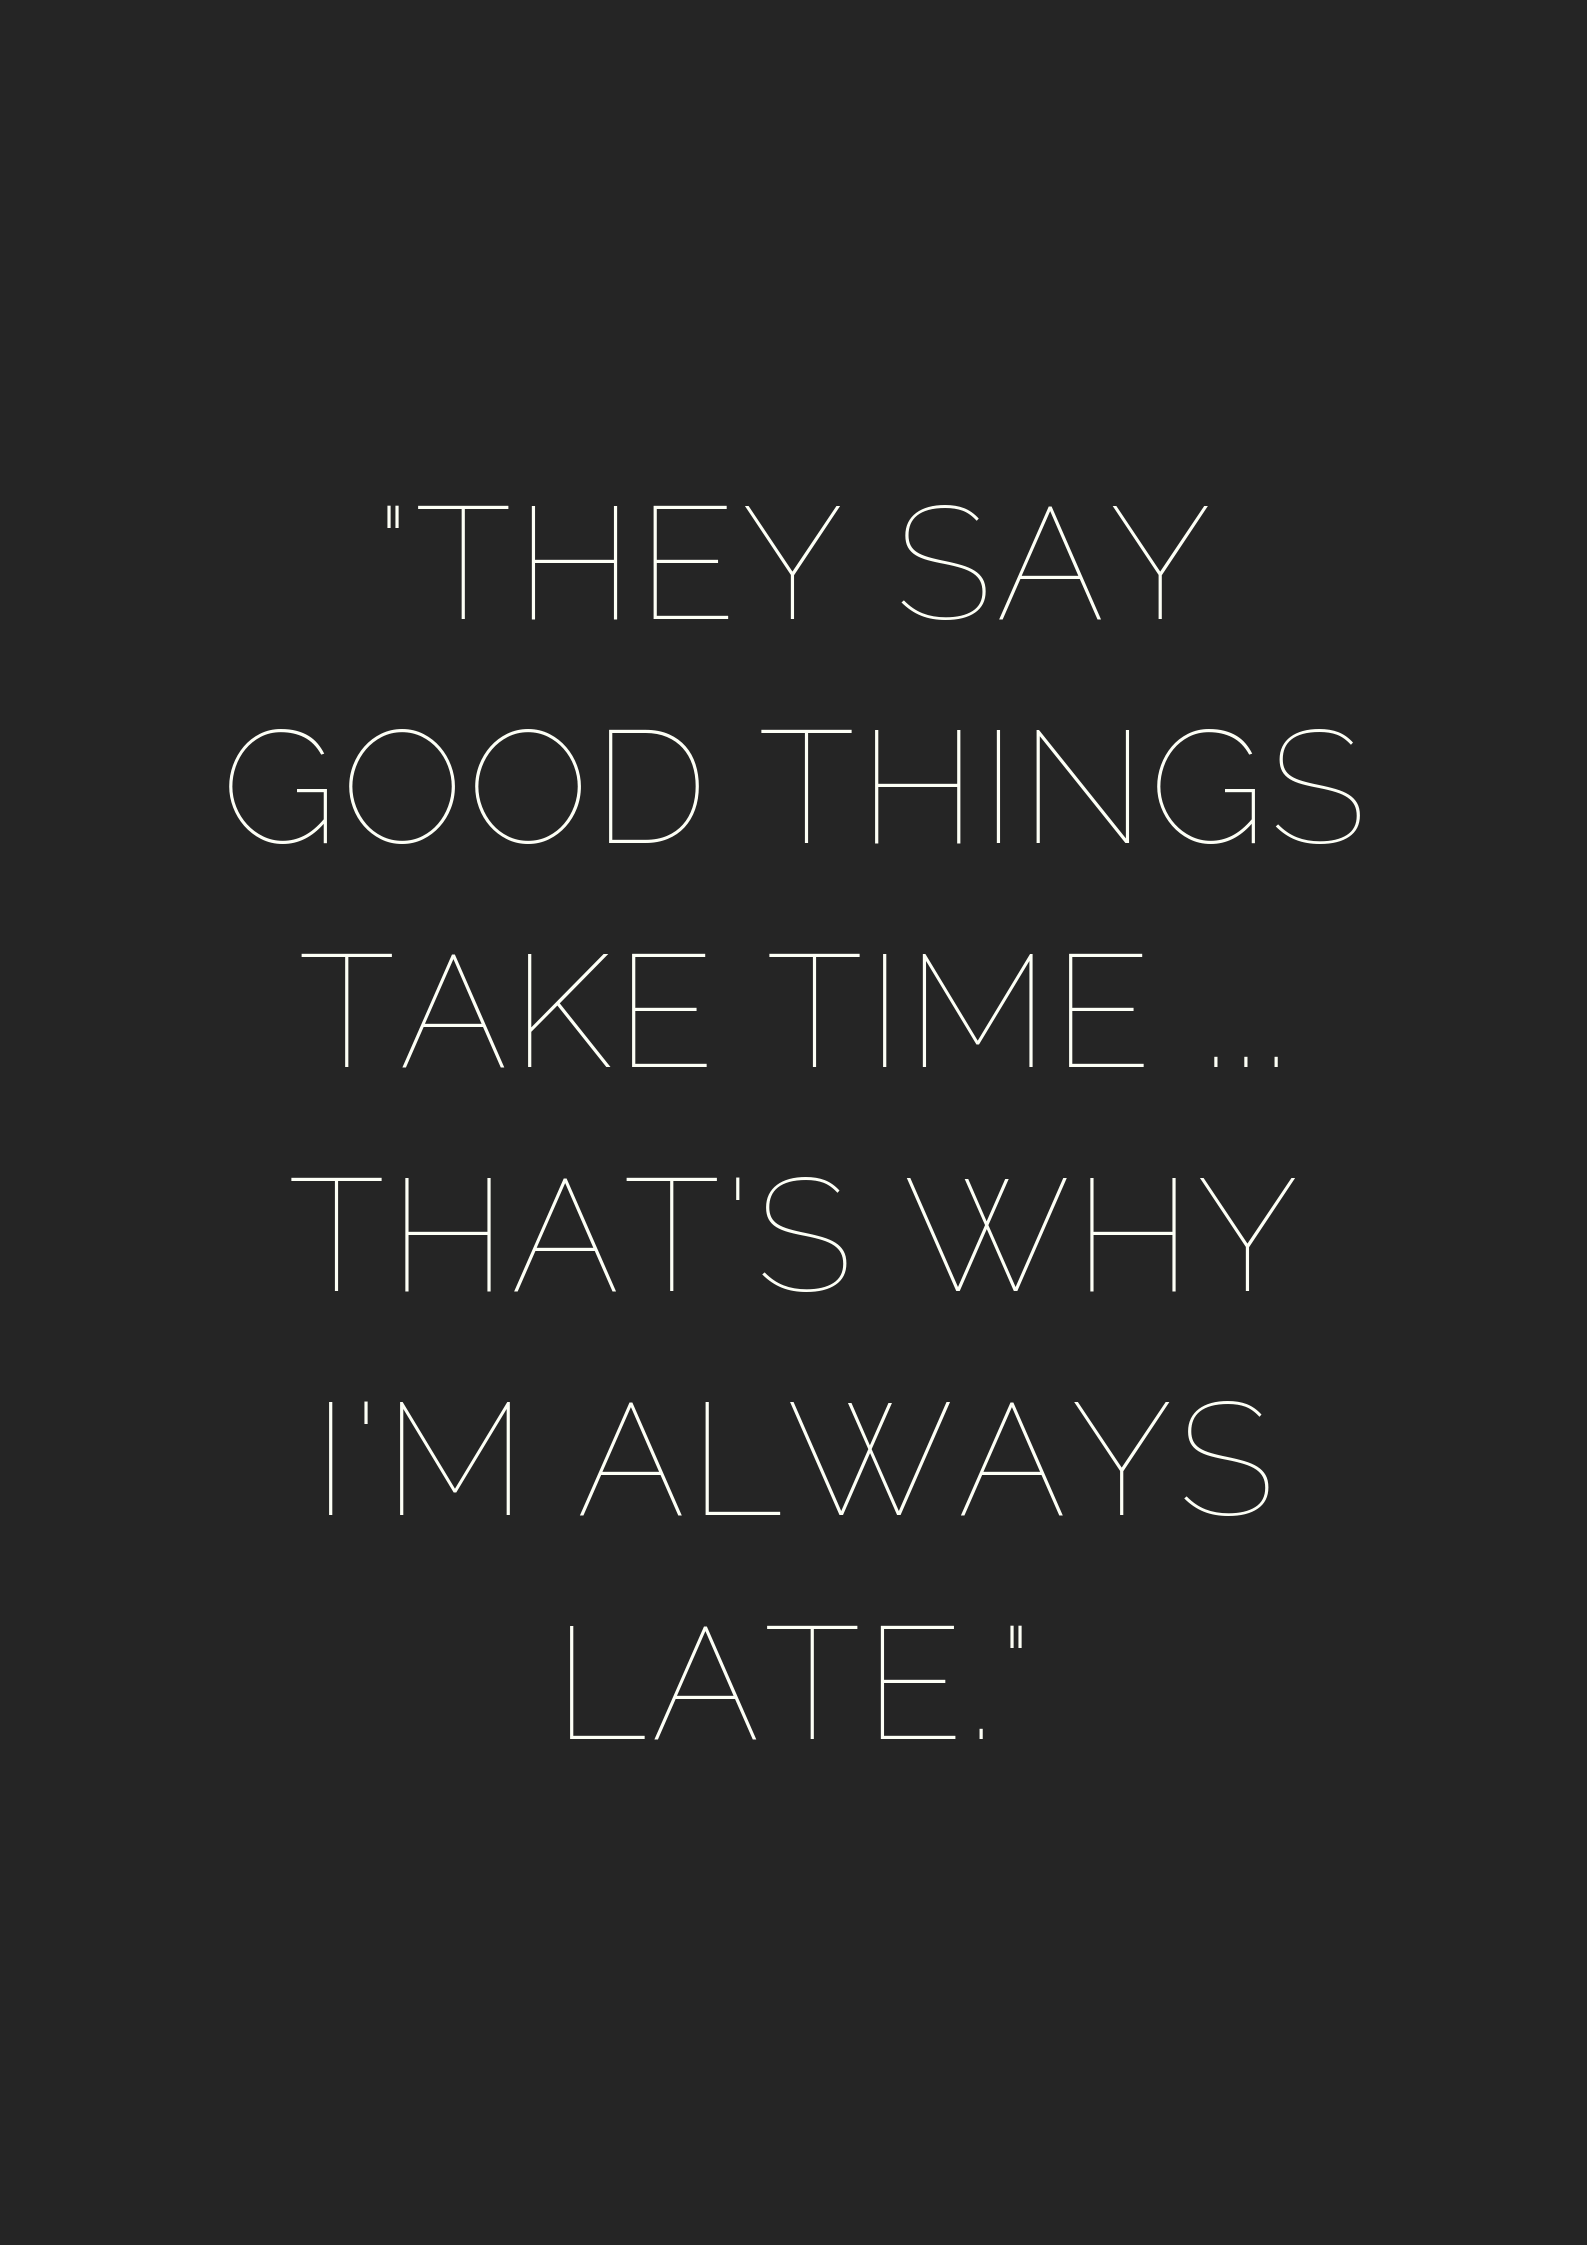 70 Savage Quotes For Women When You Re In A Super Sassy Mood Good Vibes Quotes My Dreams Quotes Savage Quotes